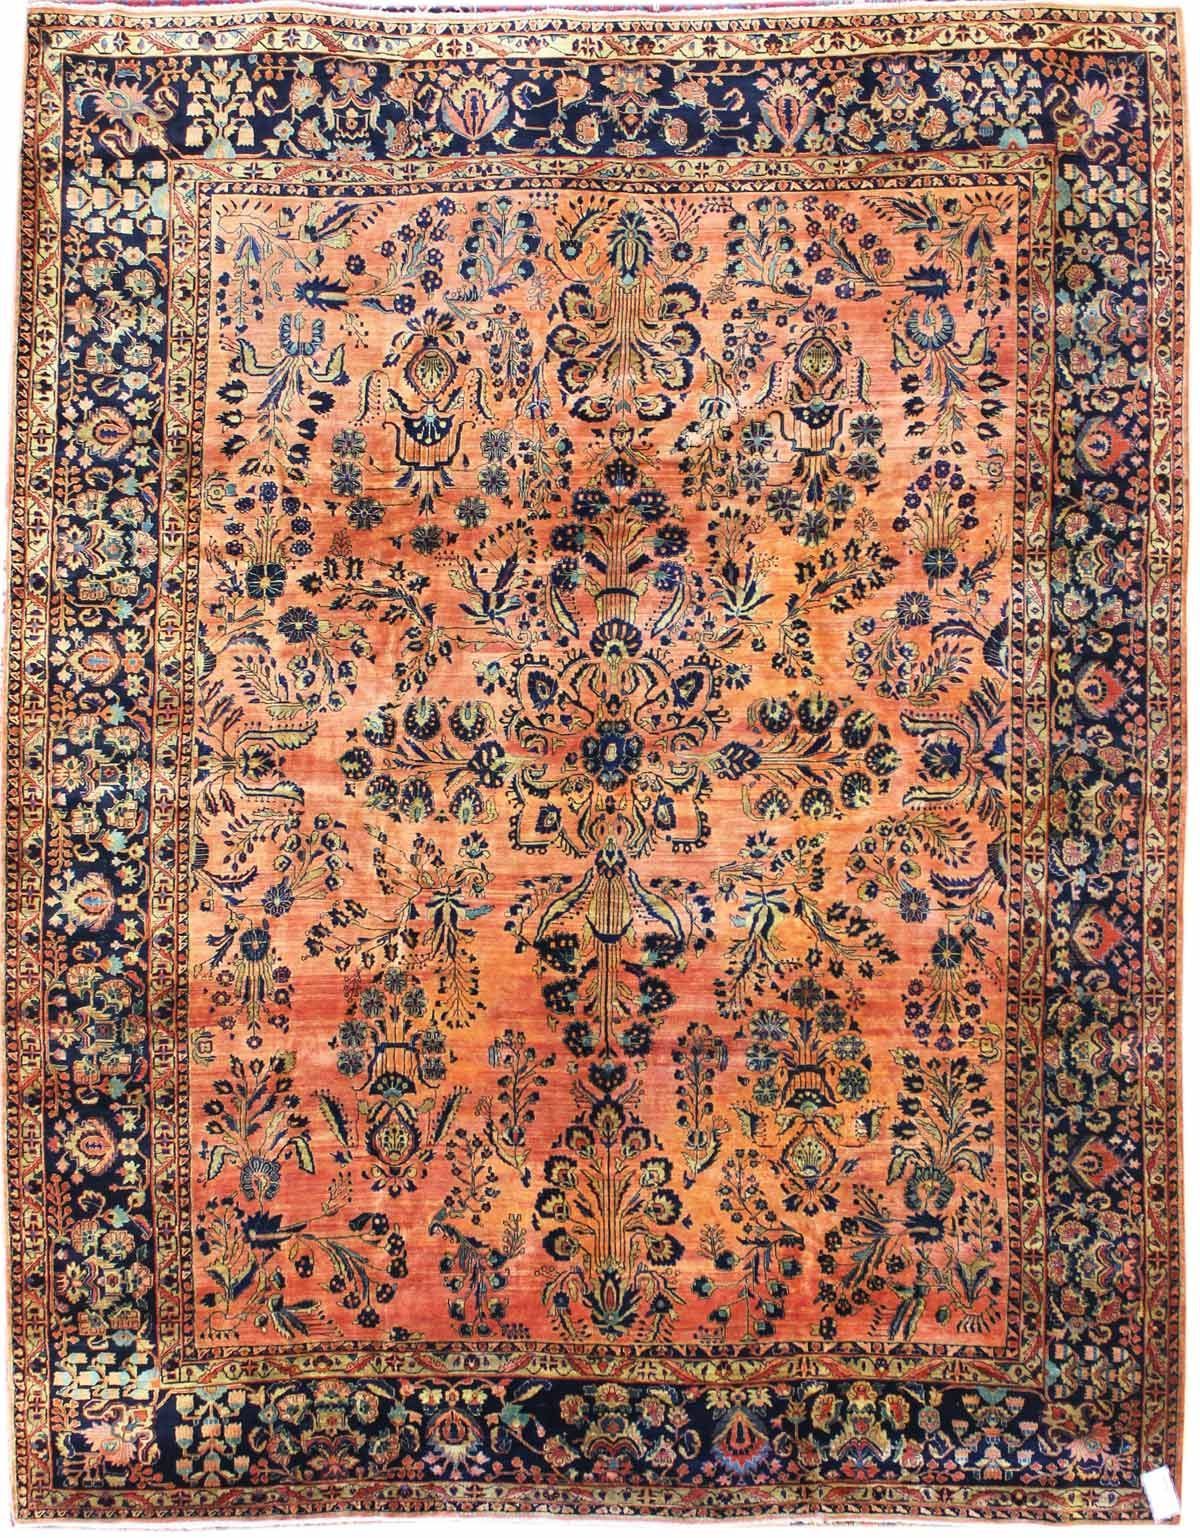 Antique Sarouk Rug Hand Knotted In Persia Circa 1920 Rugs